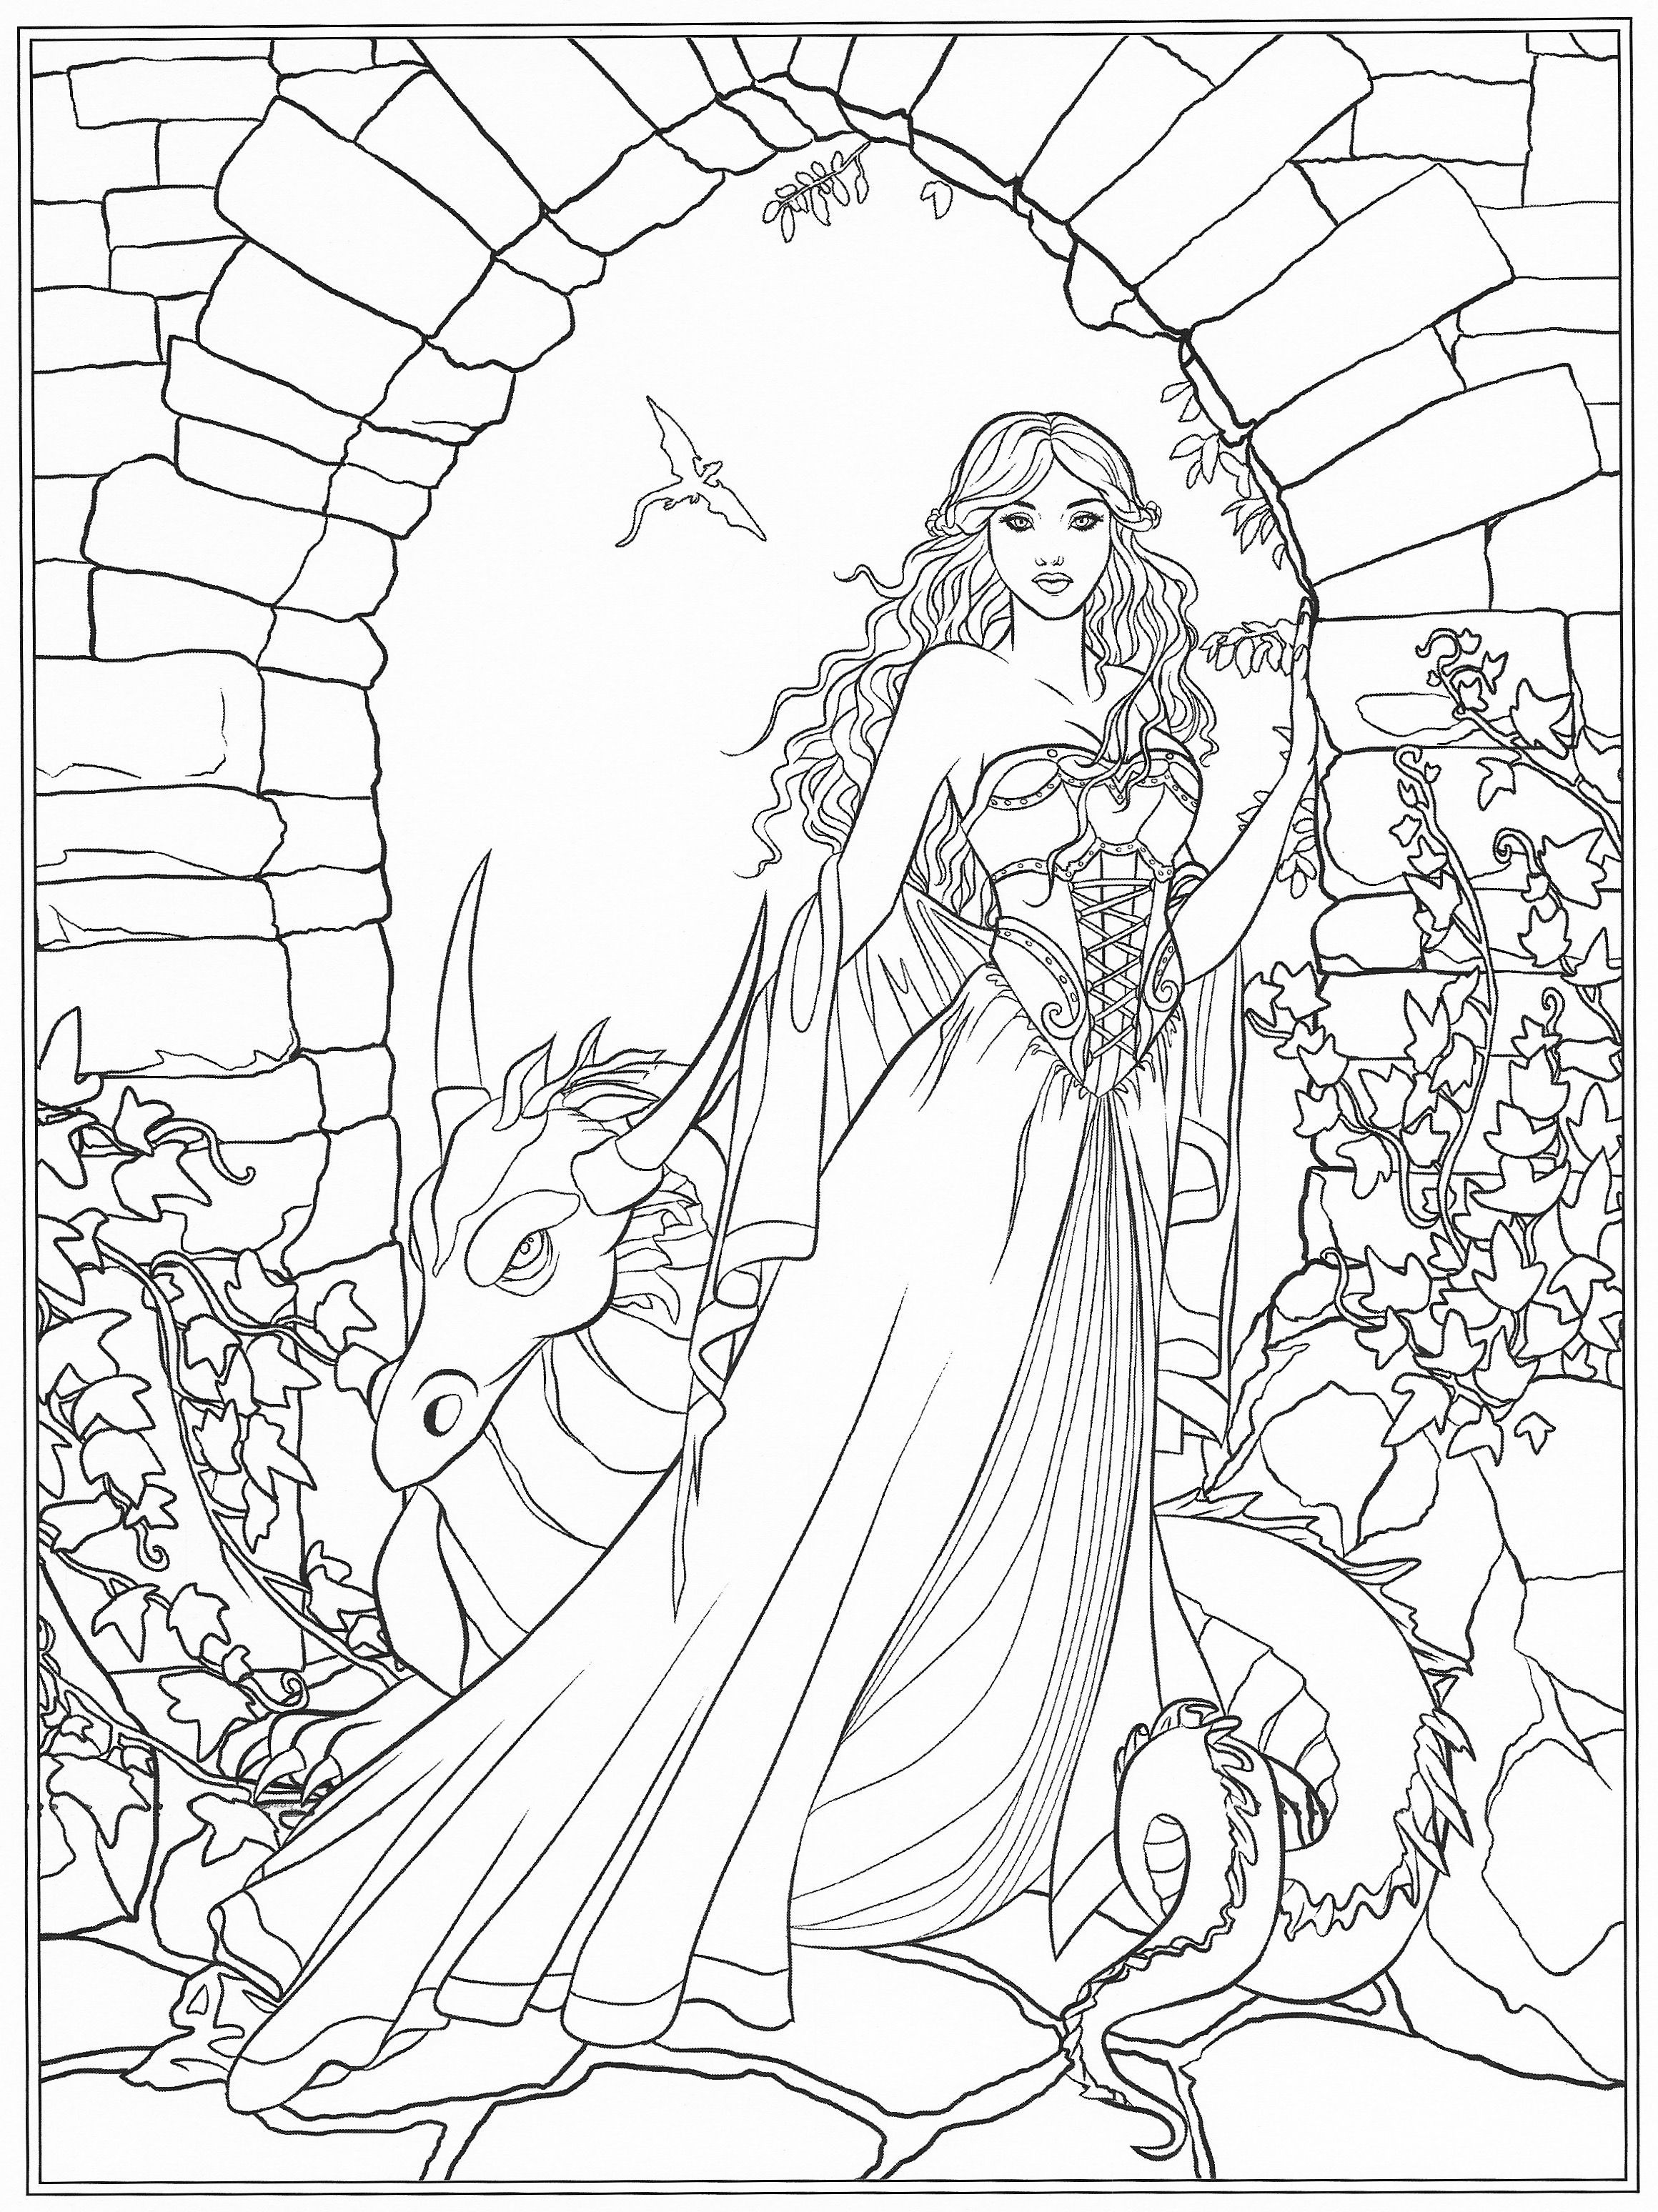 Fantasy Coloring Pages Disney Coloring Pages Coloring Pages Pokemon Coloring Pages